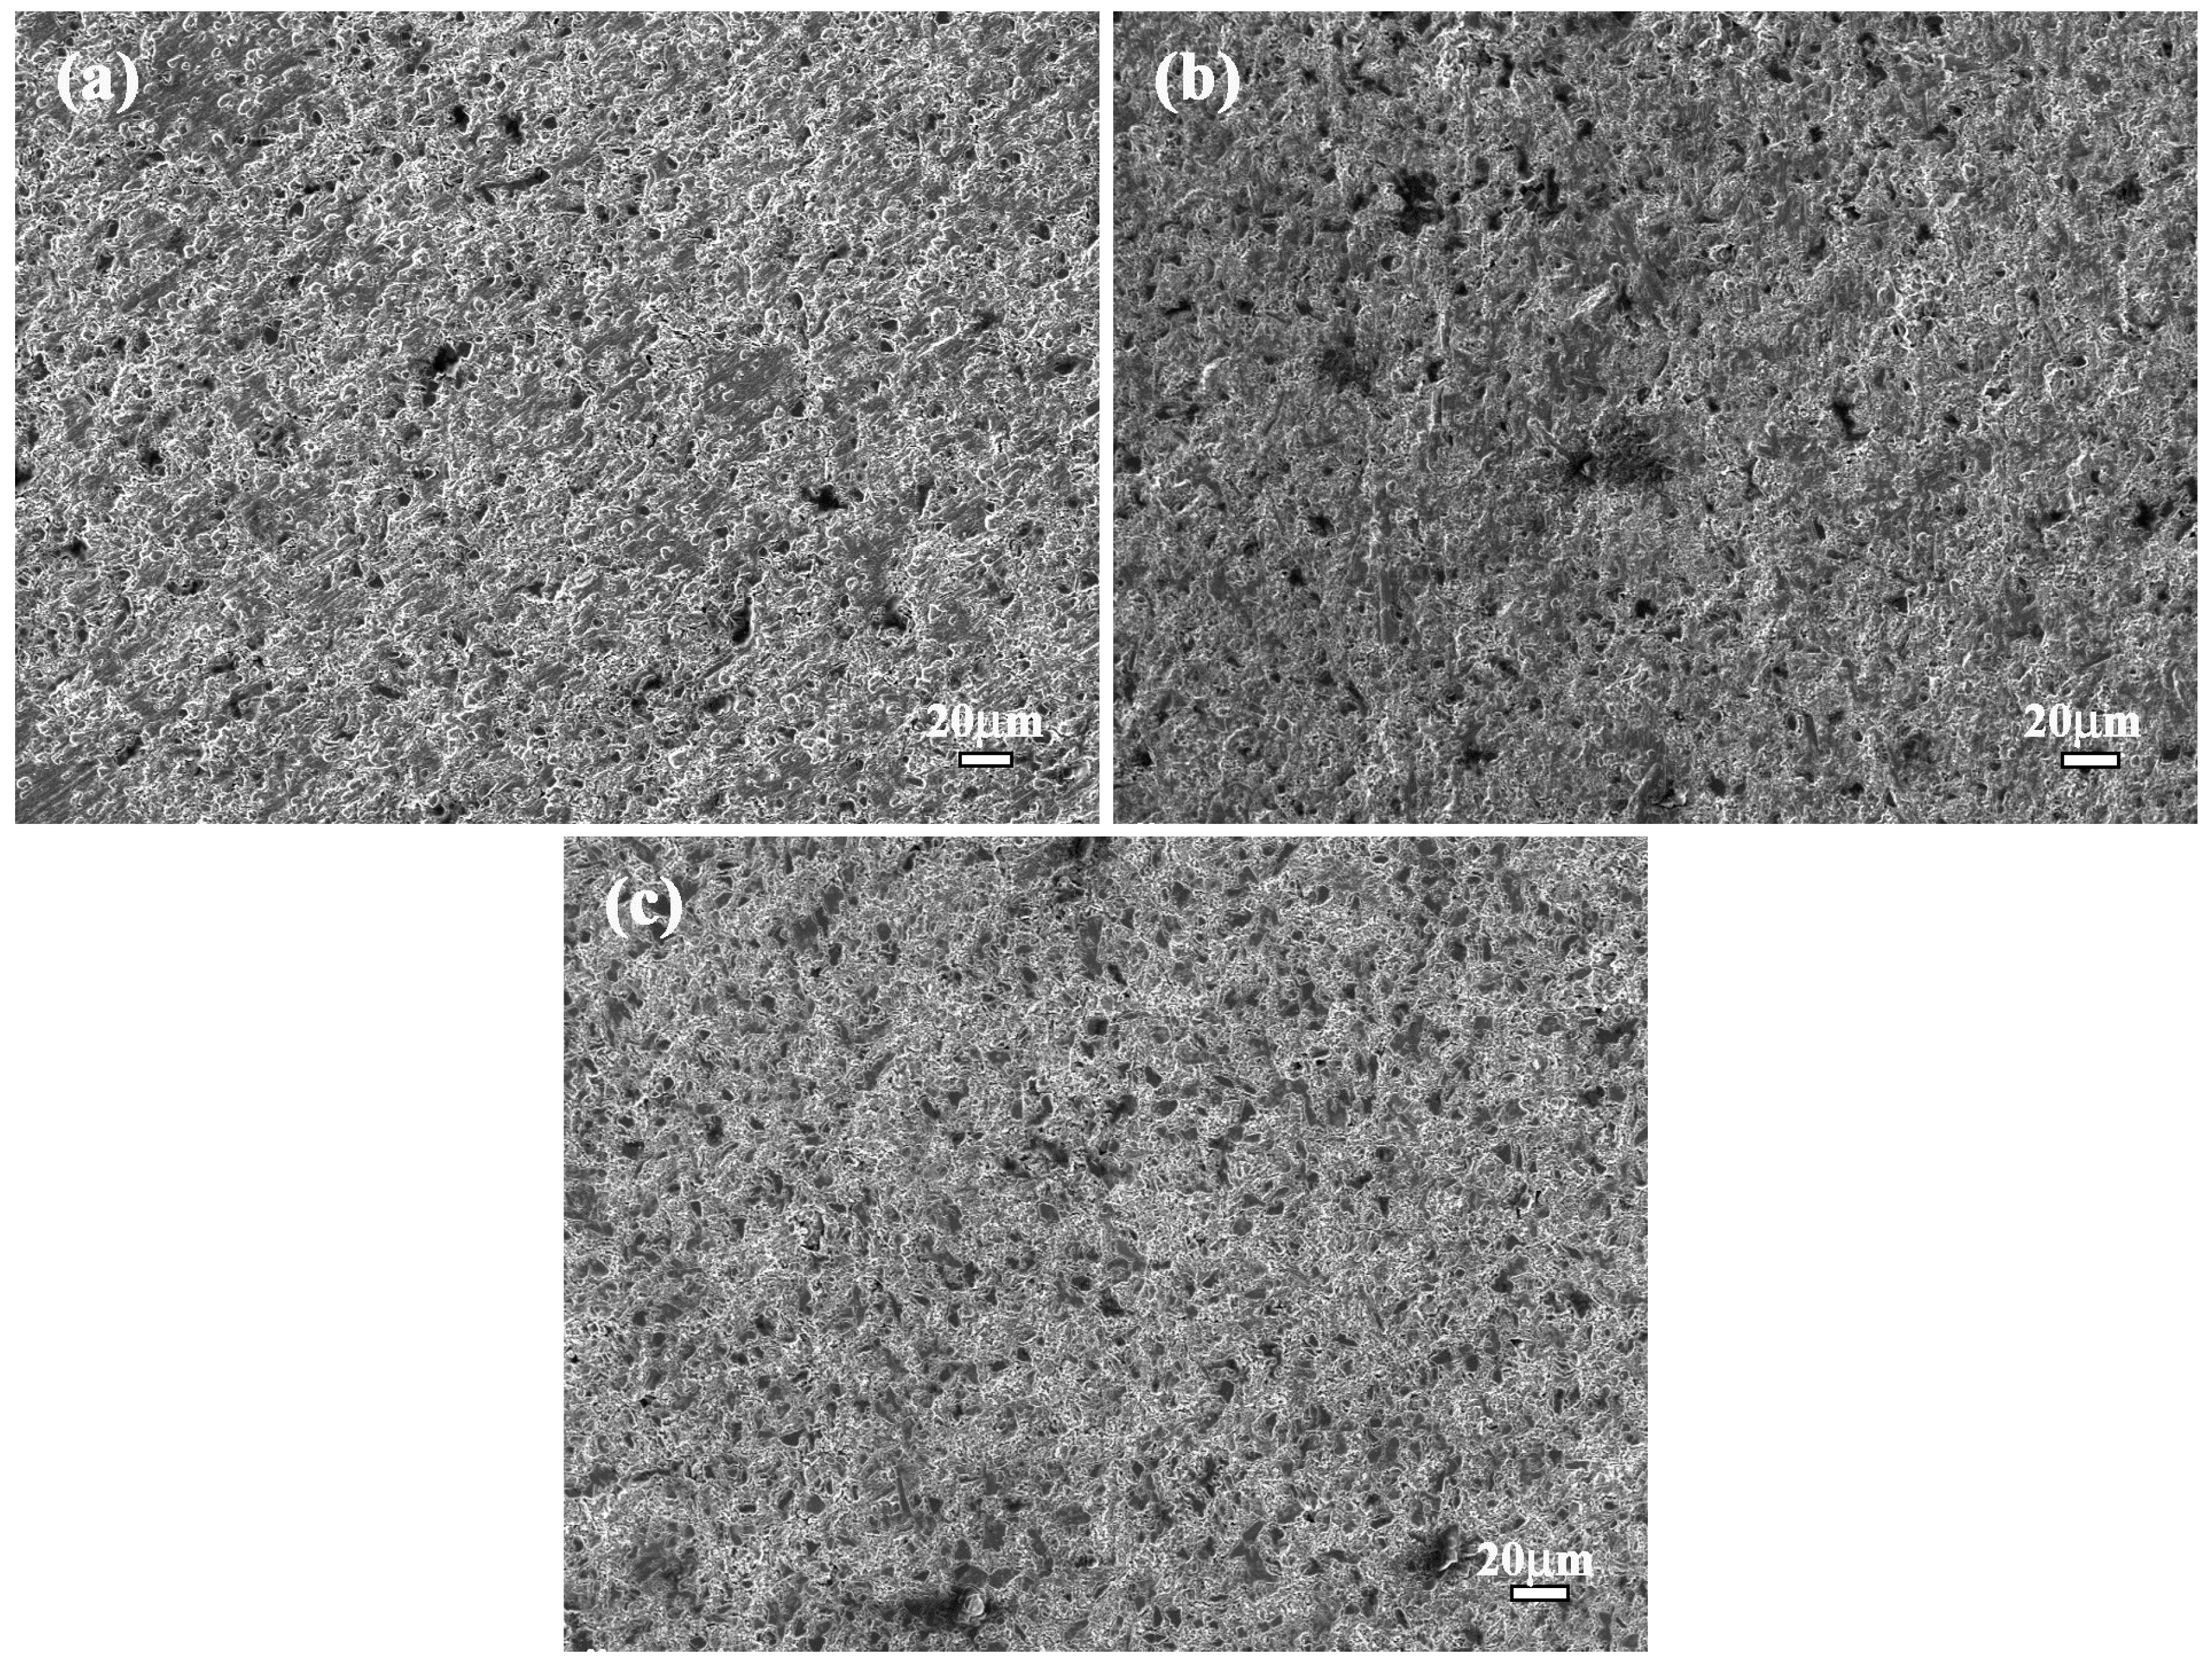 Metals Free Full Text Microstructure And Dry Sliding